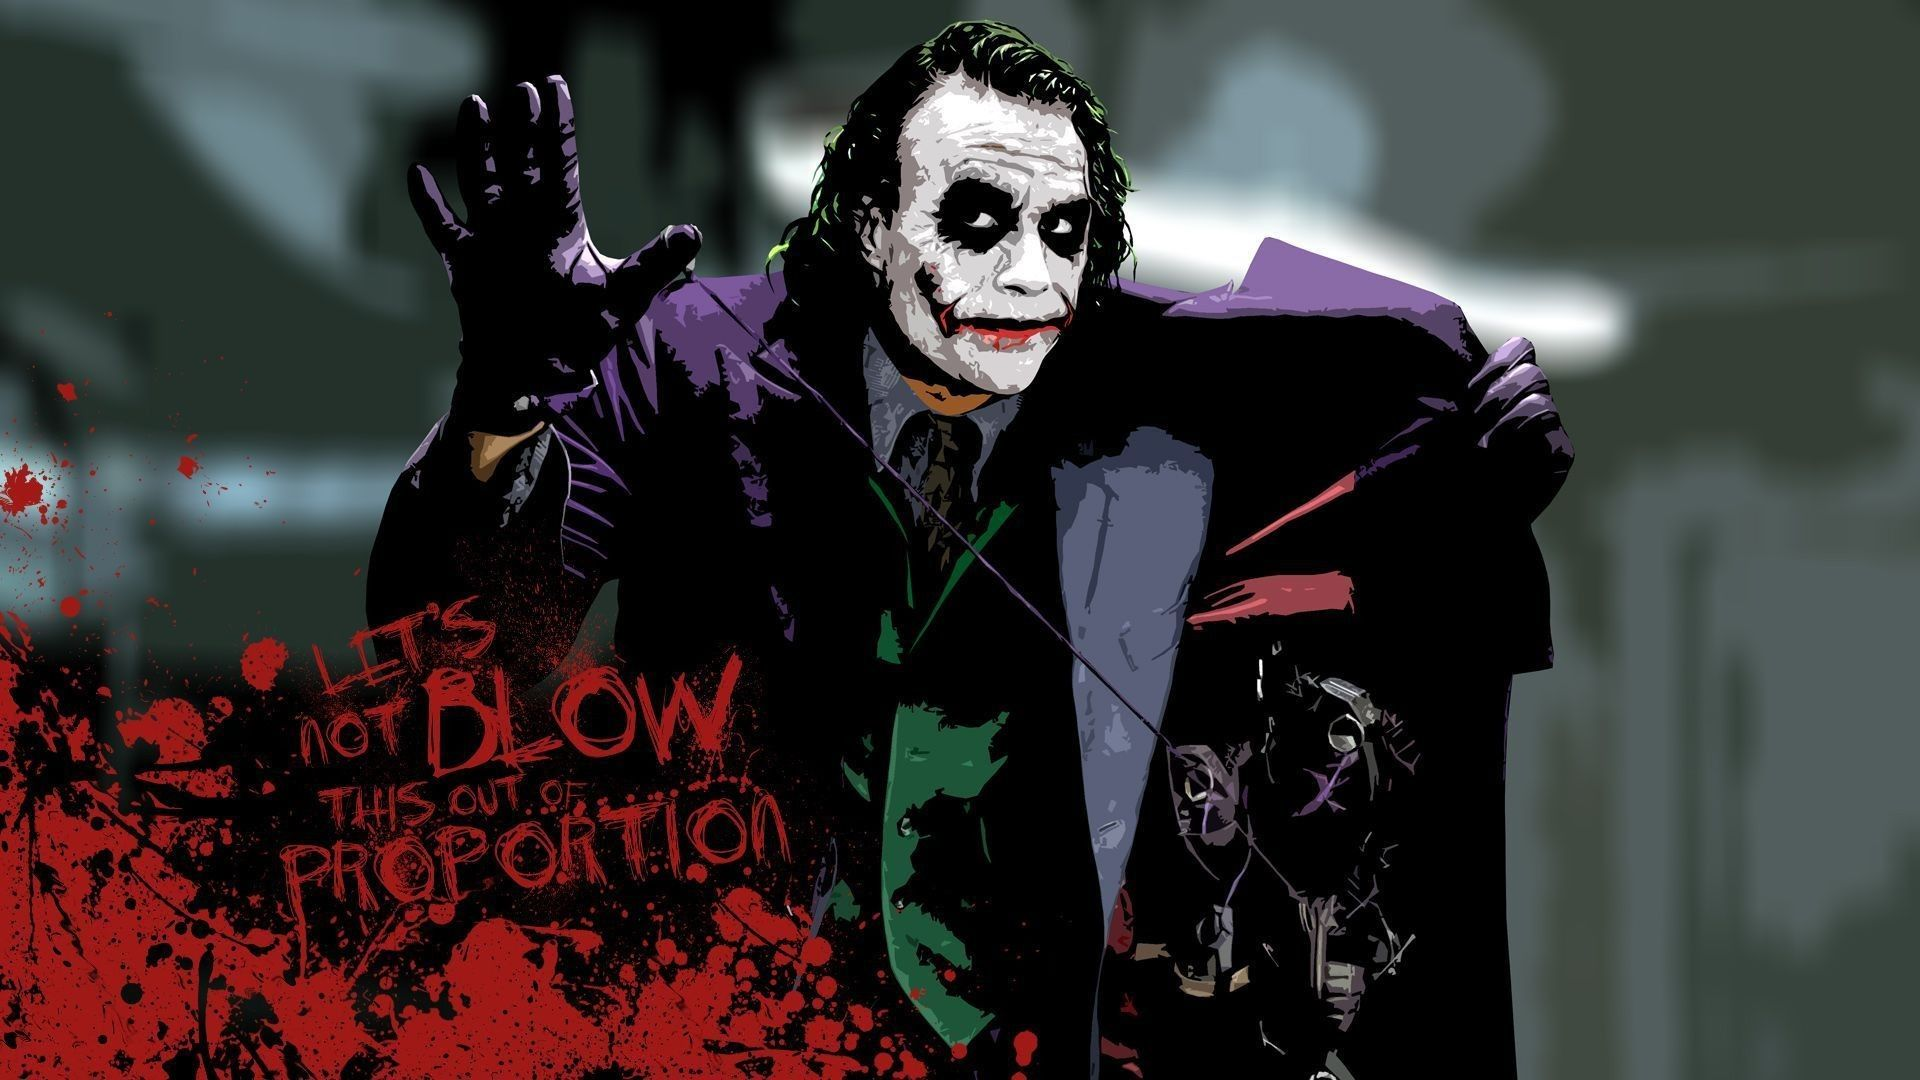 Heath Ledger Joker Quotes Wallpapers Top Free Heath Ledger